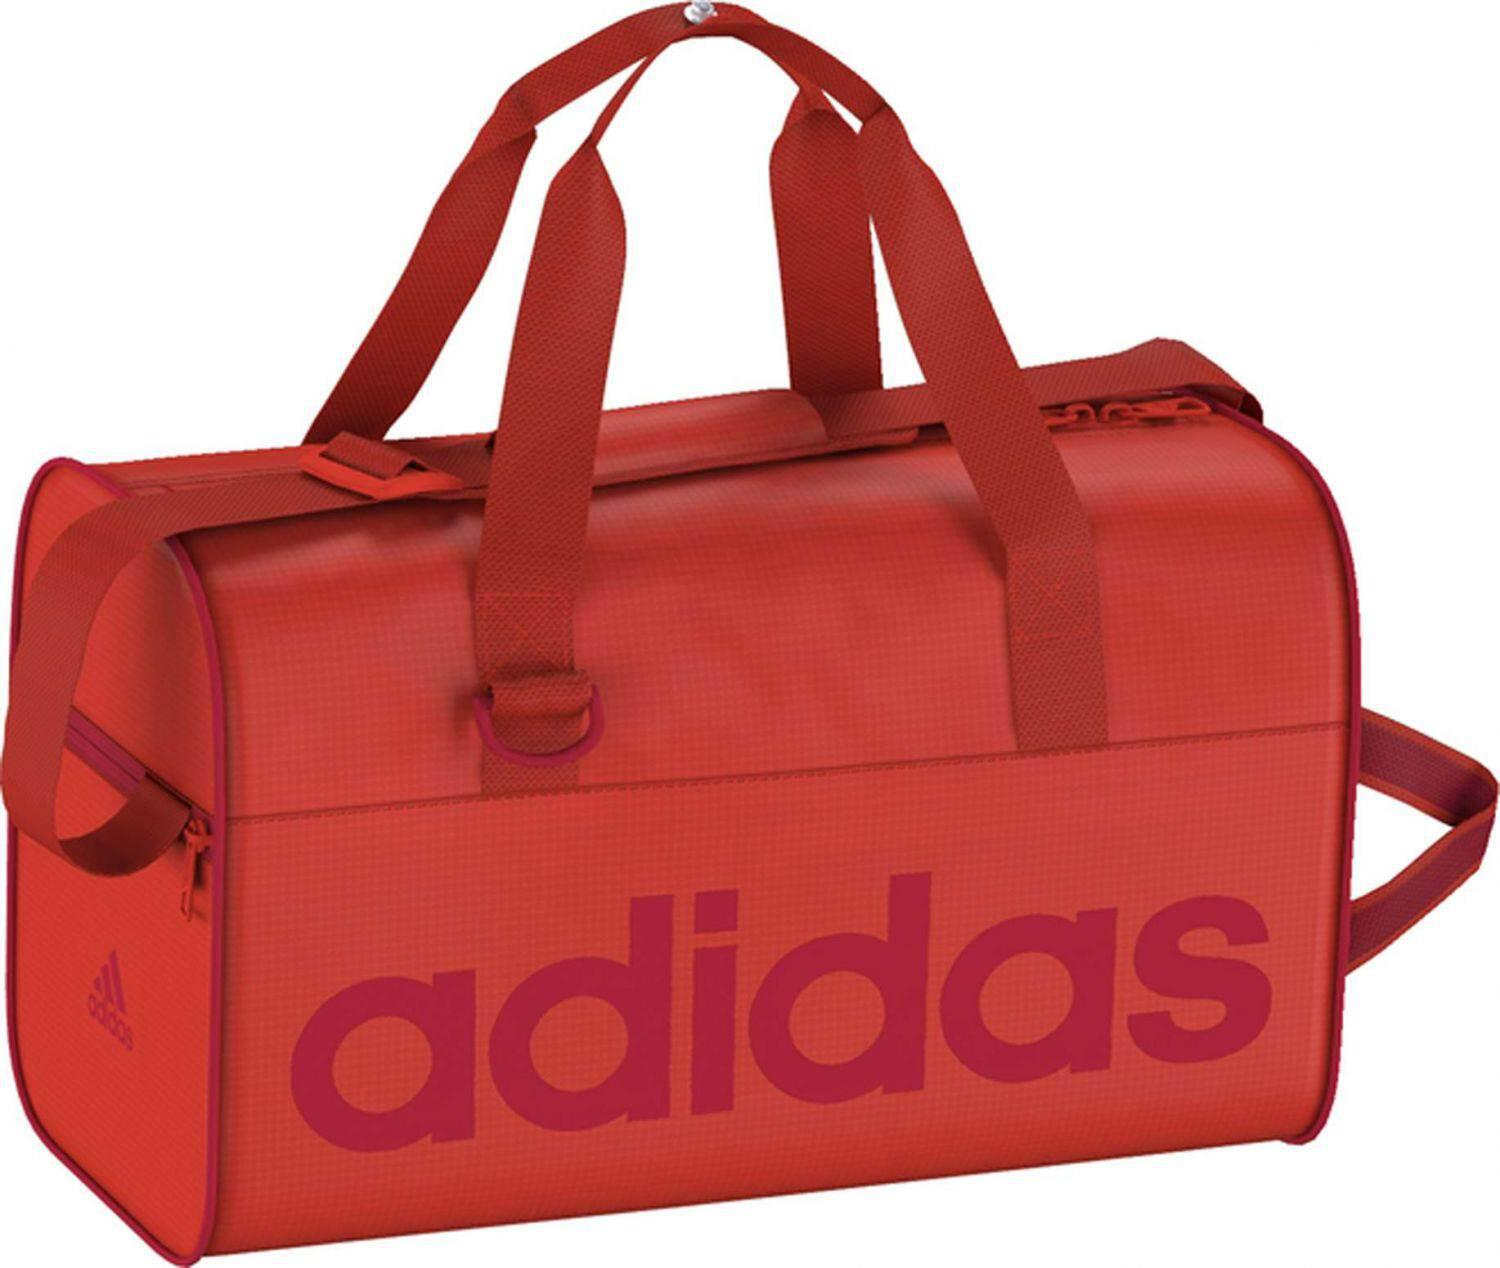 adidas-linear-performance-teambag-xs-tasche-farbe-bold-orange-scarlet-scarlet-